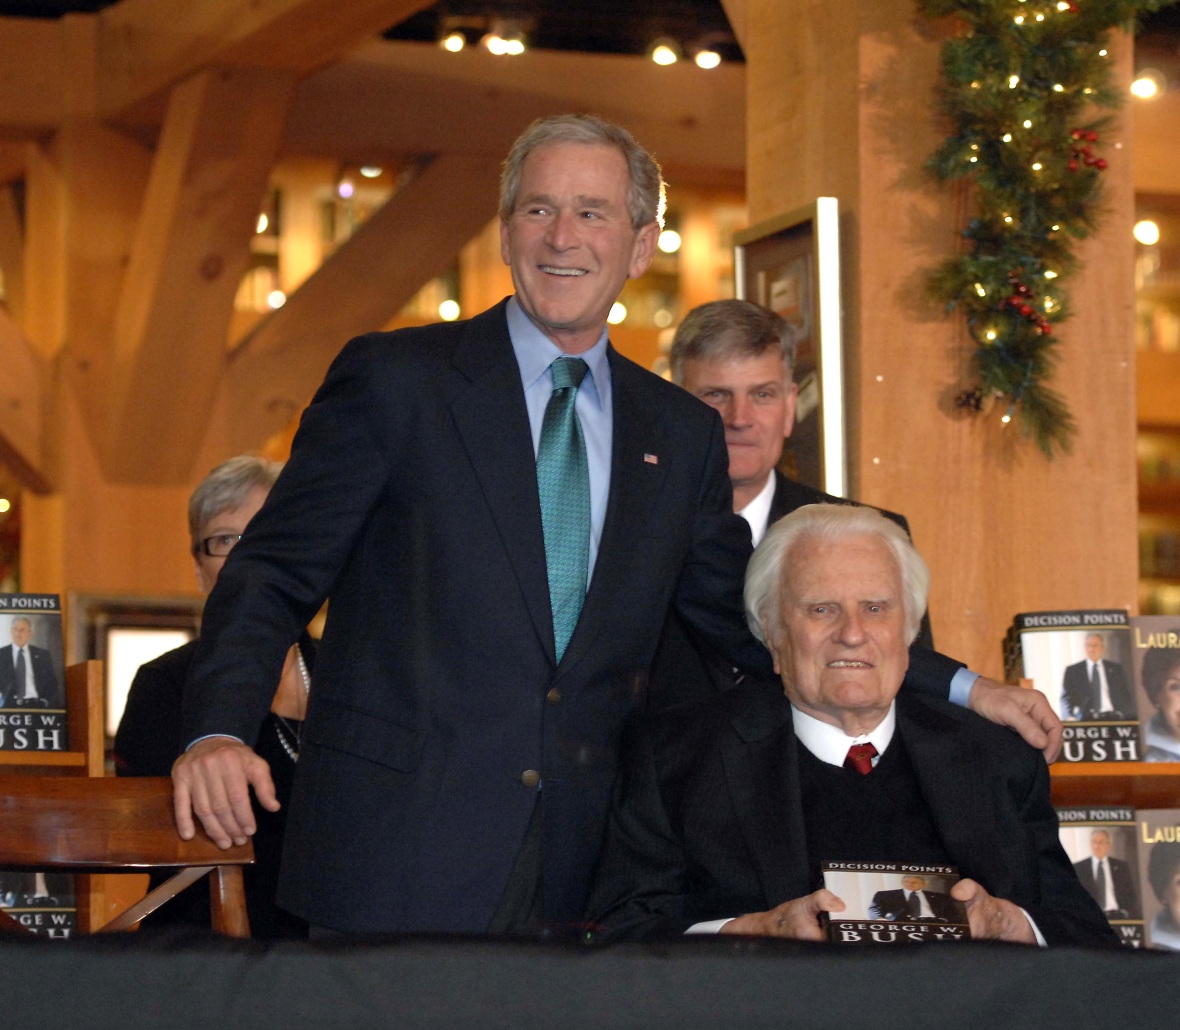 billy graham and george w. bush getty images